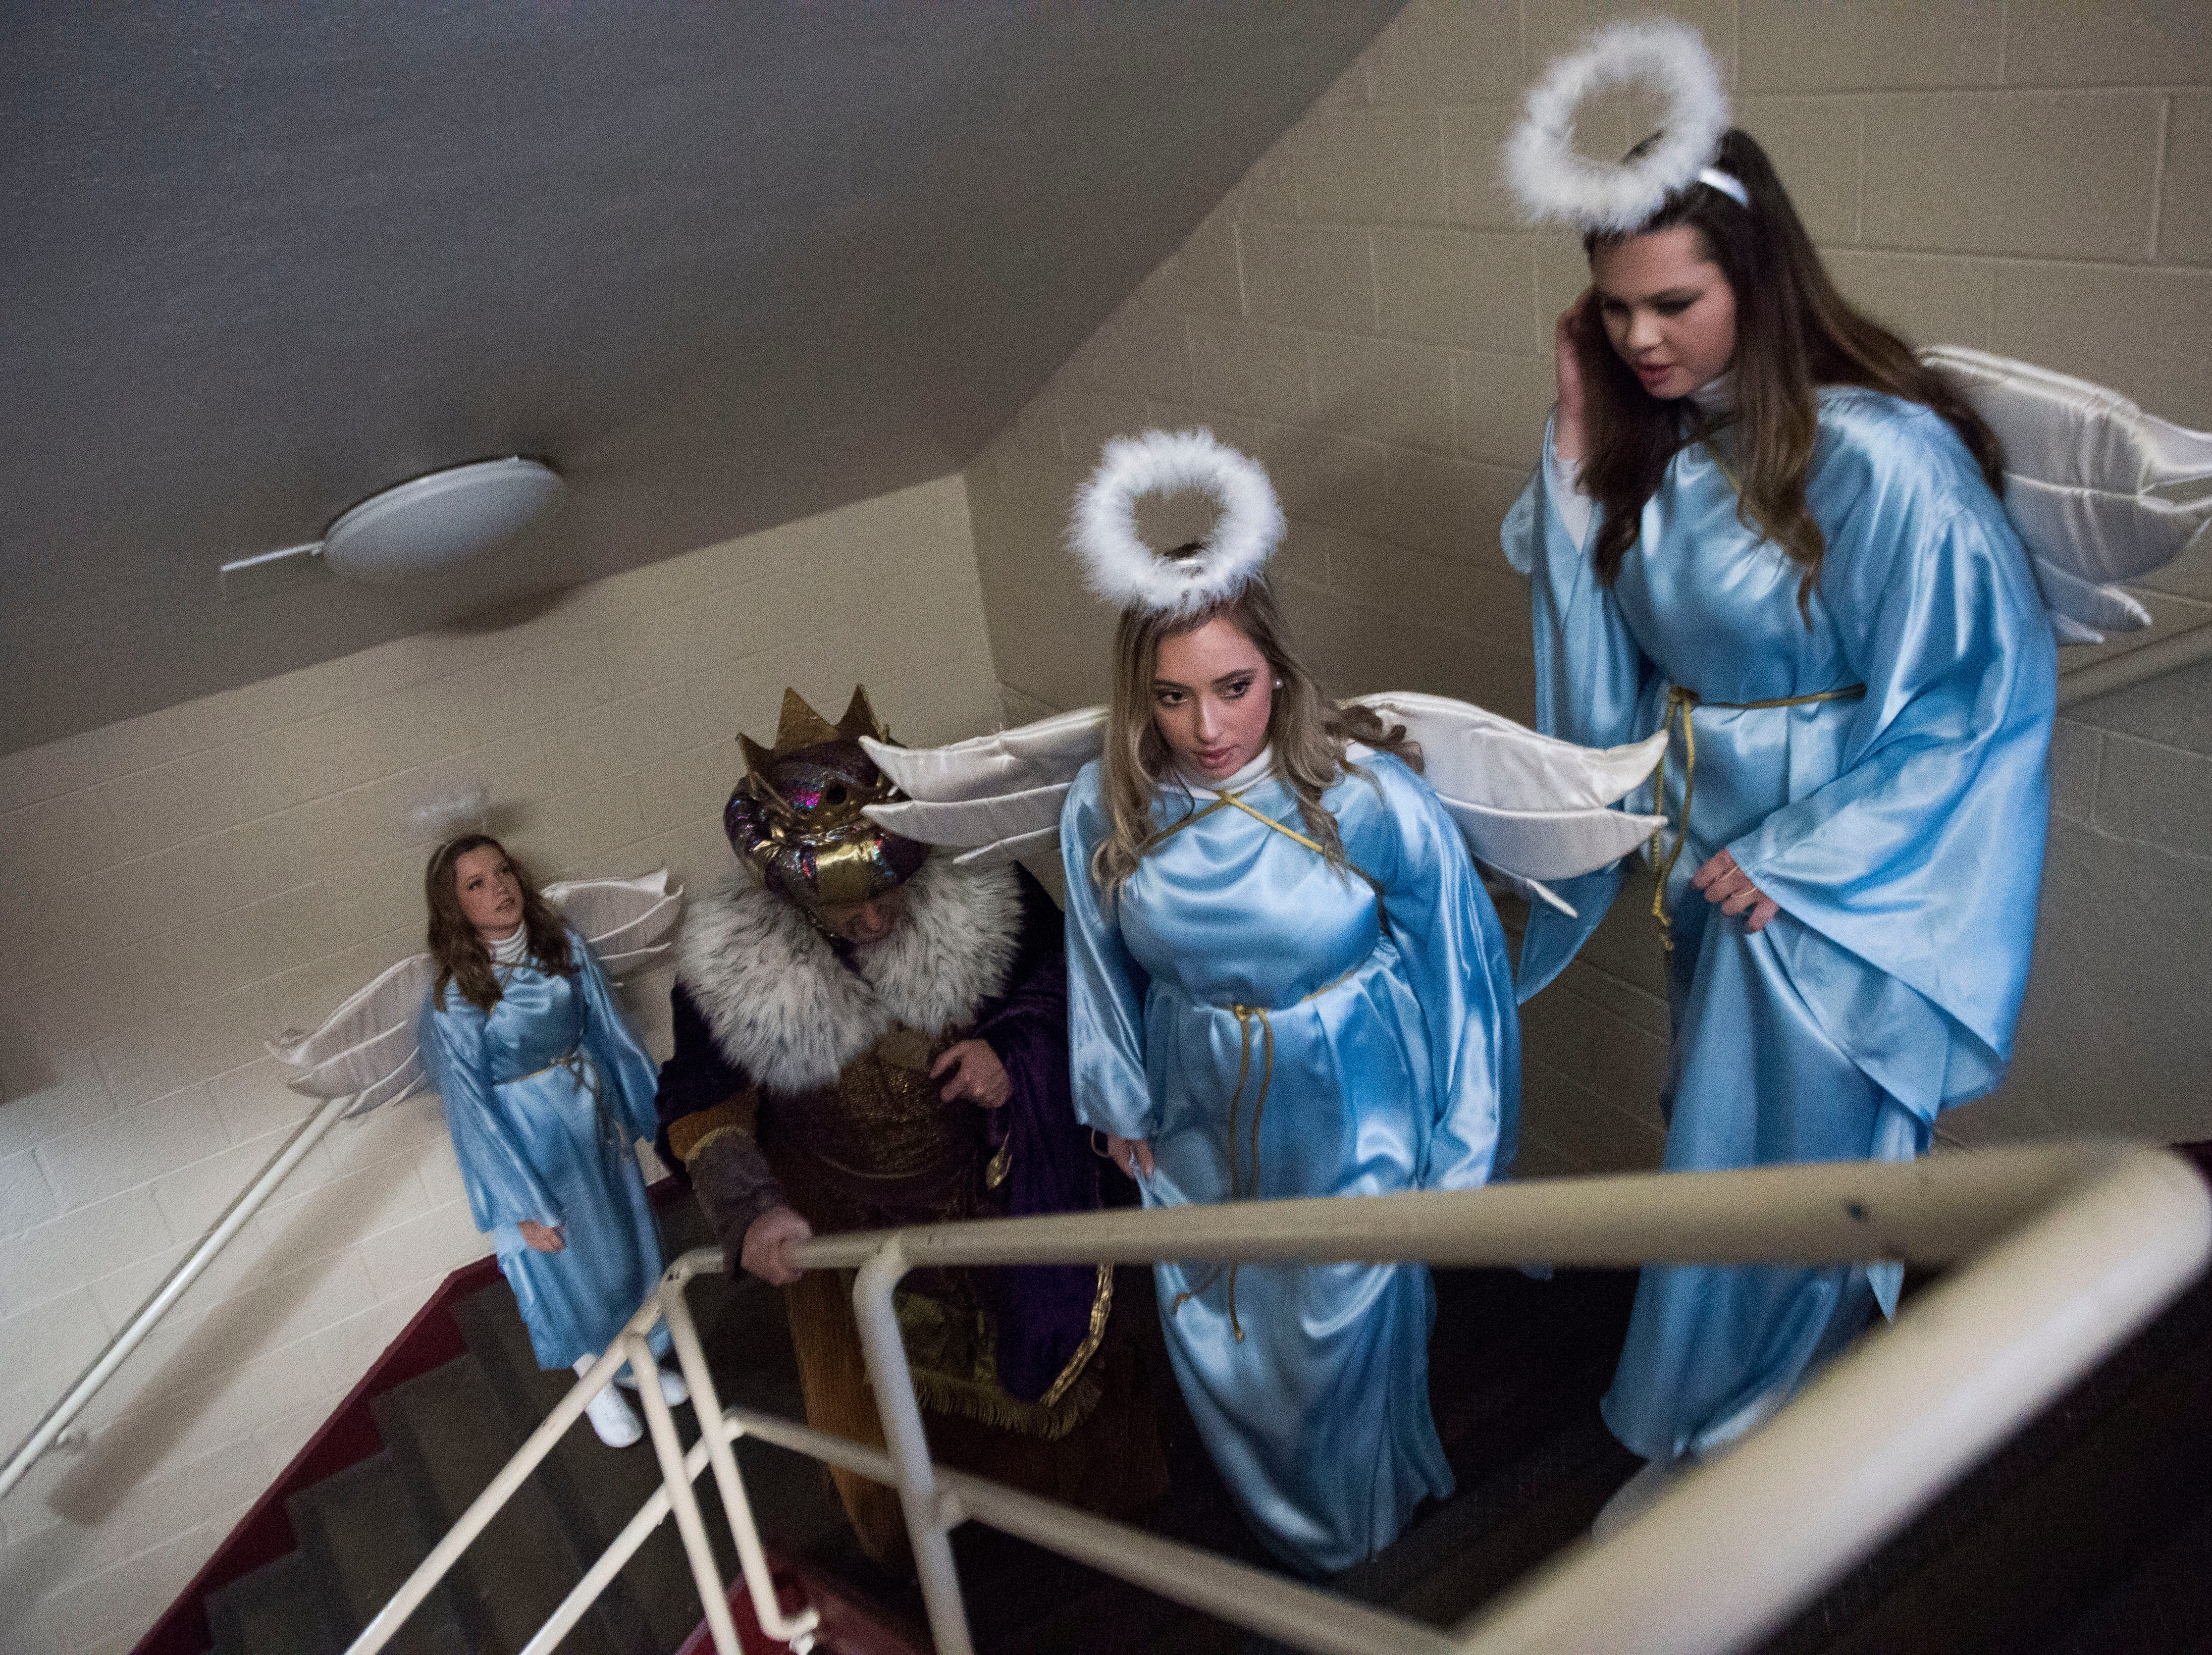 Angels and a king leave the annual Knoxville Nativity Pageant at the Civic Coliseum Saturday, Dec. 8, 2018.